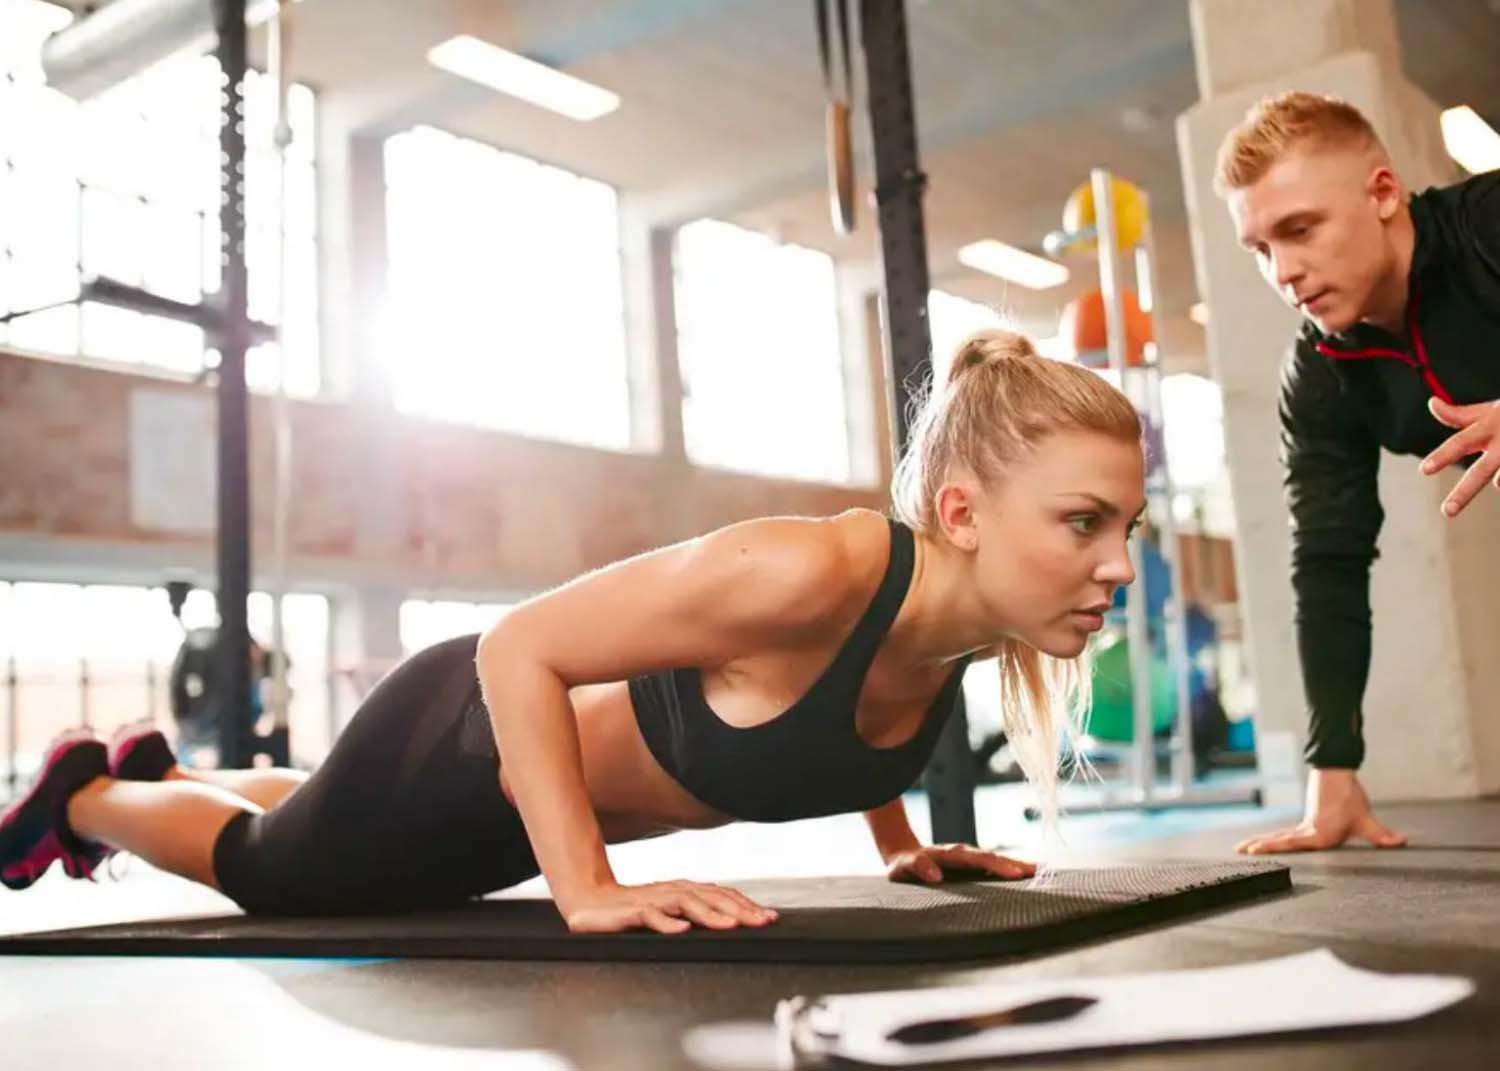 Envisagym Personal Training Gym Ranelagh Dublin From €139 Per Month InstaFit for Girls Blonde Girl Doing Pushups